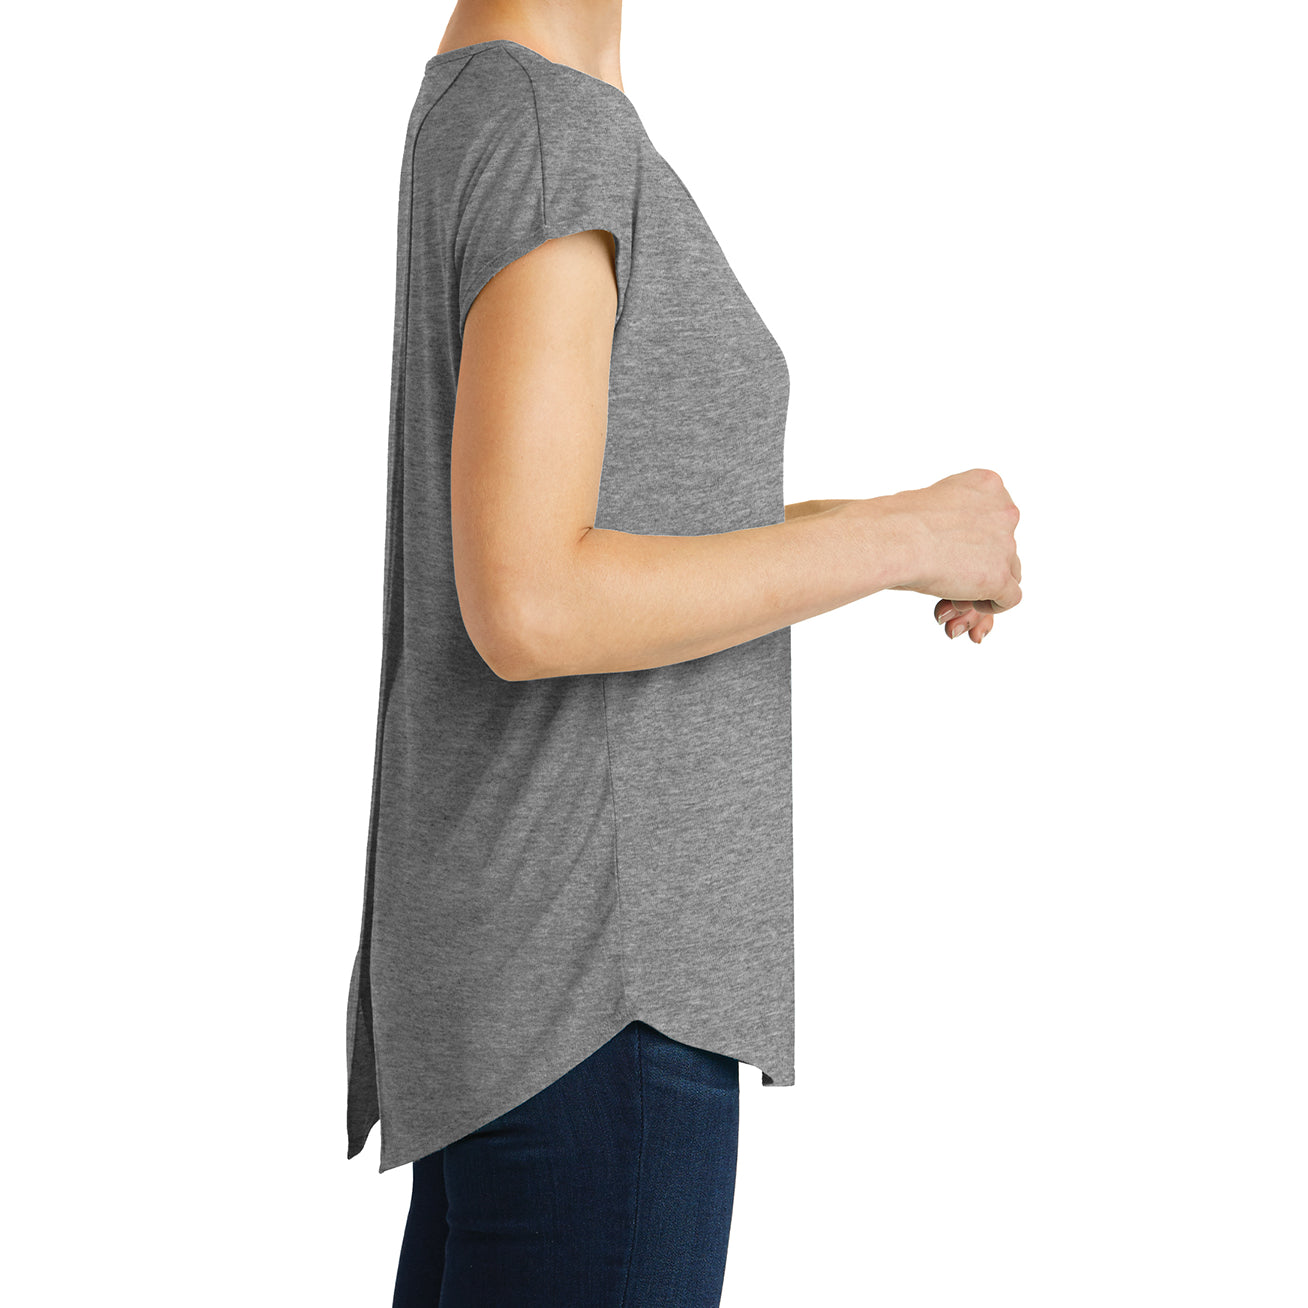 Womens Drapey Cross-Back Tee - Heathered Nickel - Side